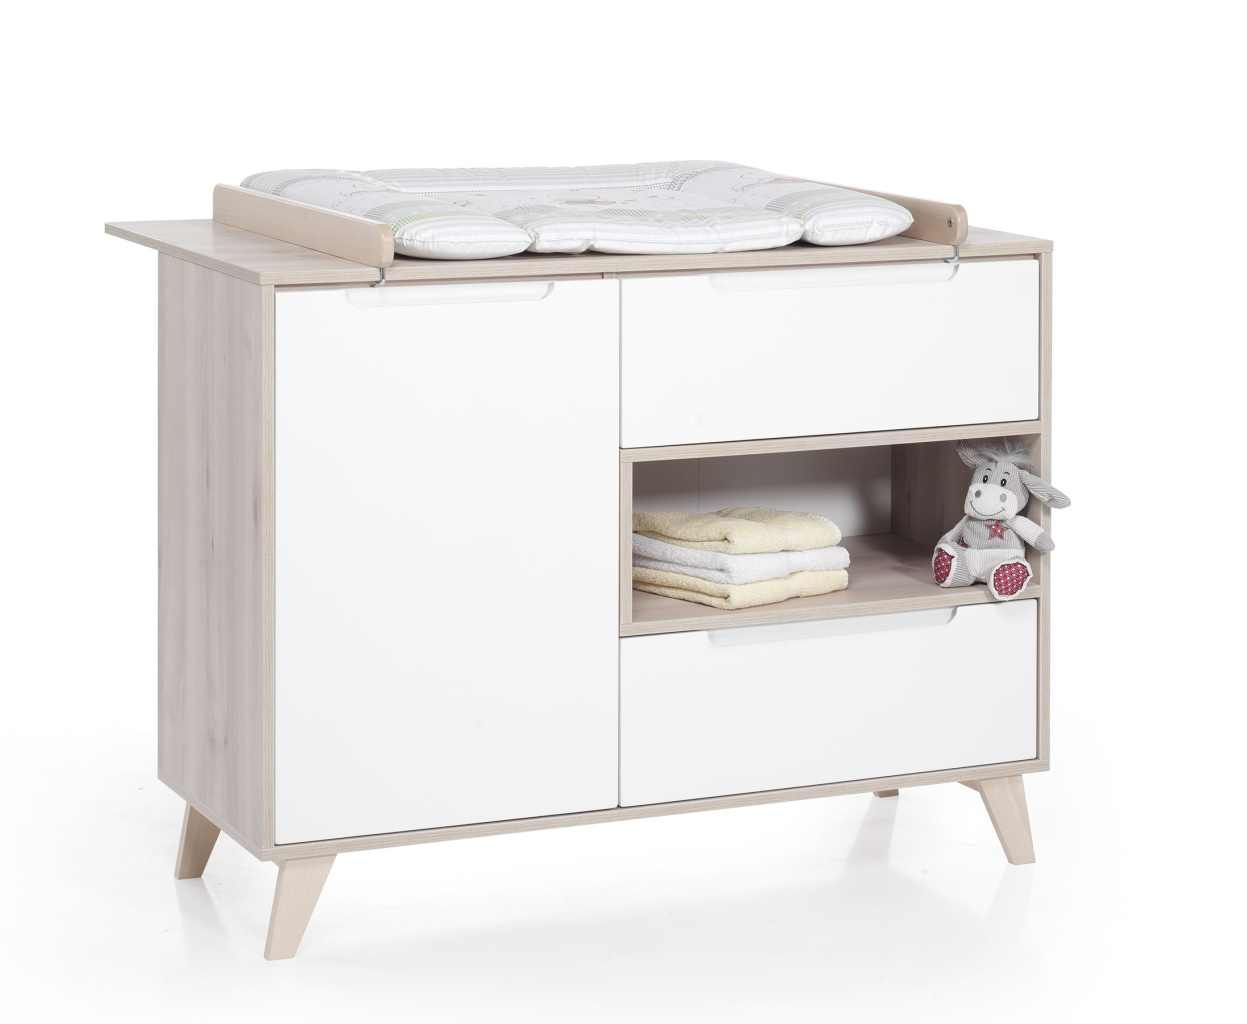 commode a langer Mette naturel blanc Geuther BamBinou